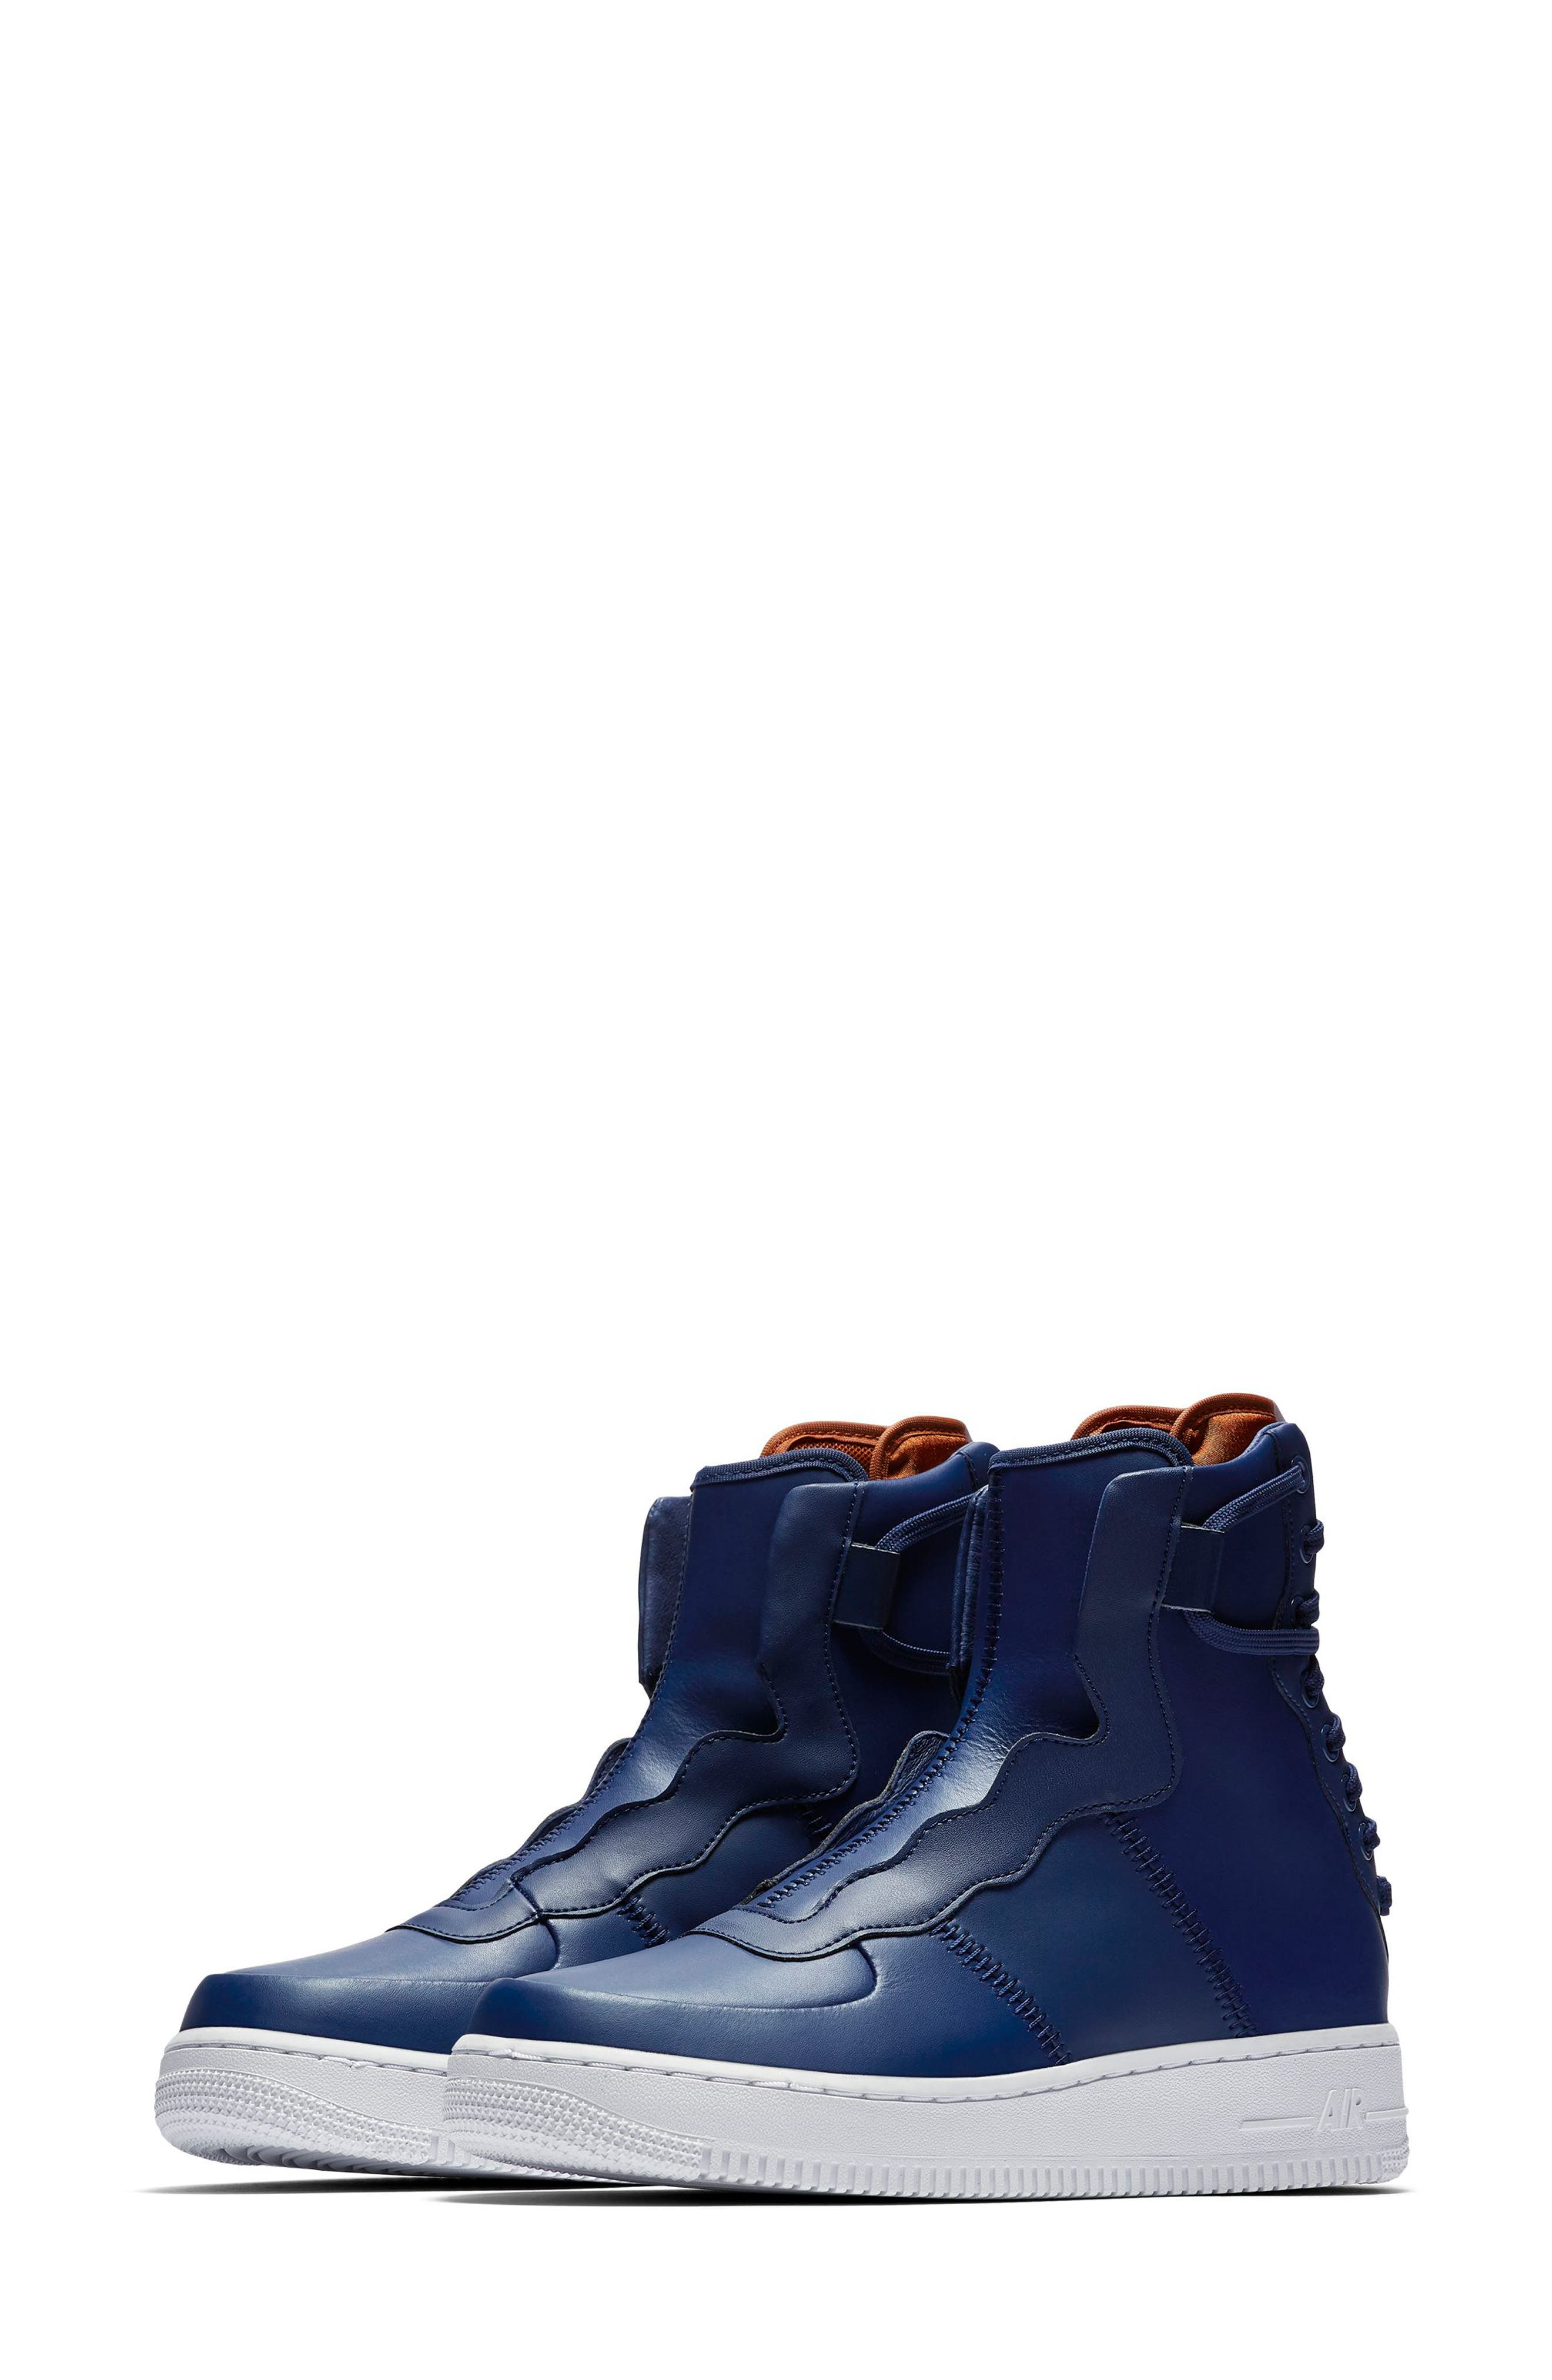 Air Force 1 Rebel XX High Top Sneaker,                         Main,                         color, BLUE VOID/ RUSSET/ WHITE/ BLUE